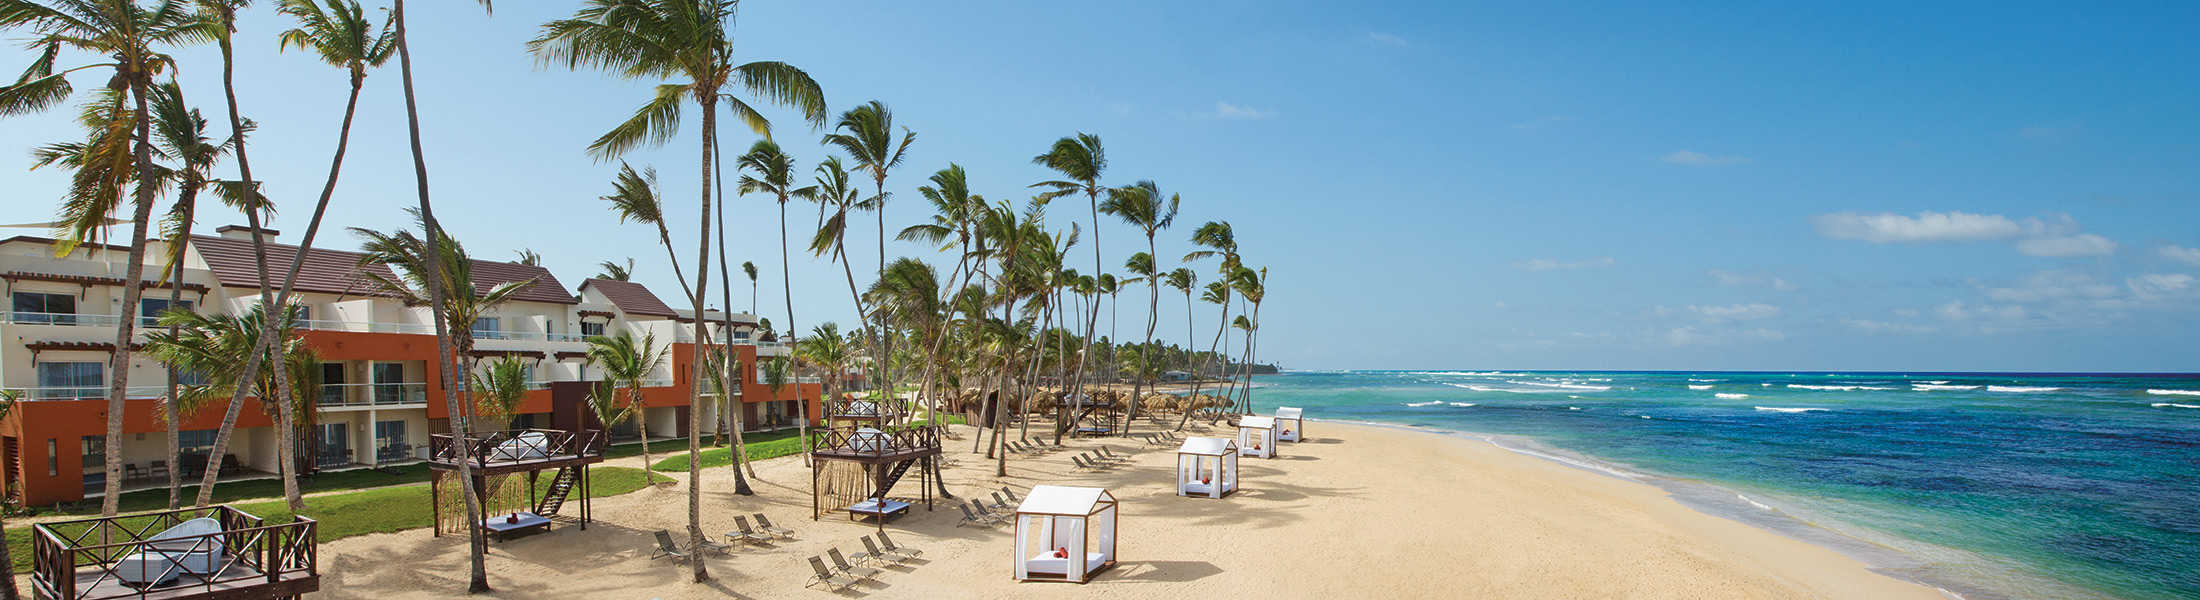 Beach with sun loungers at Breathless Punta Cana